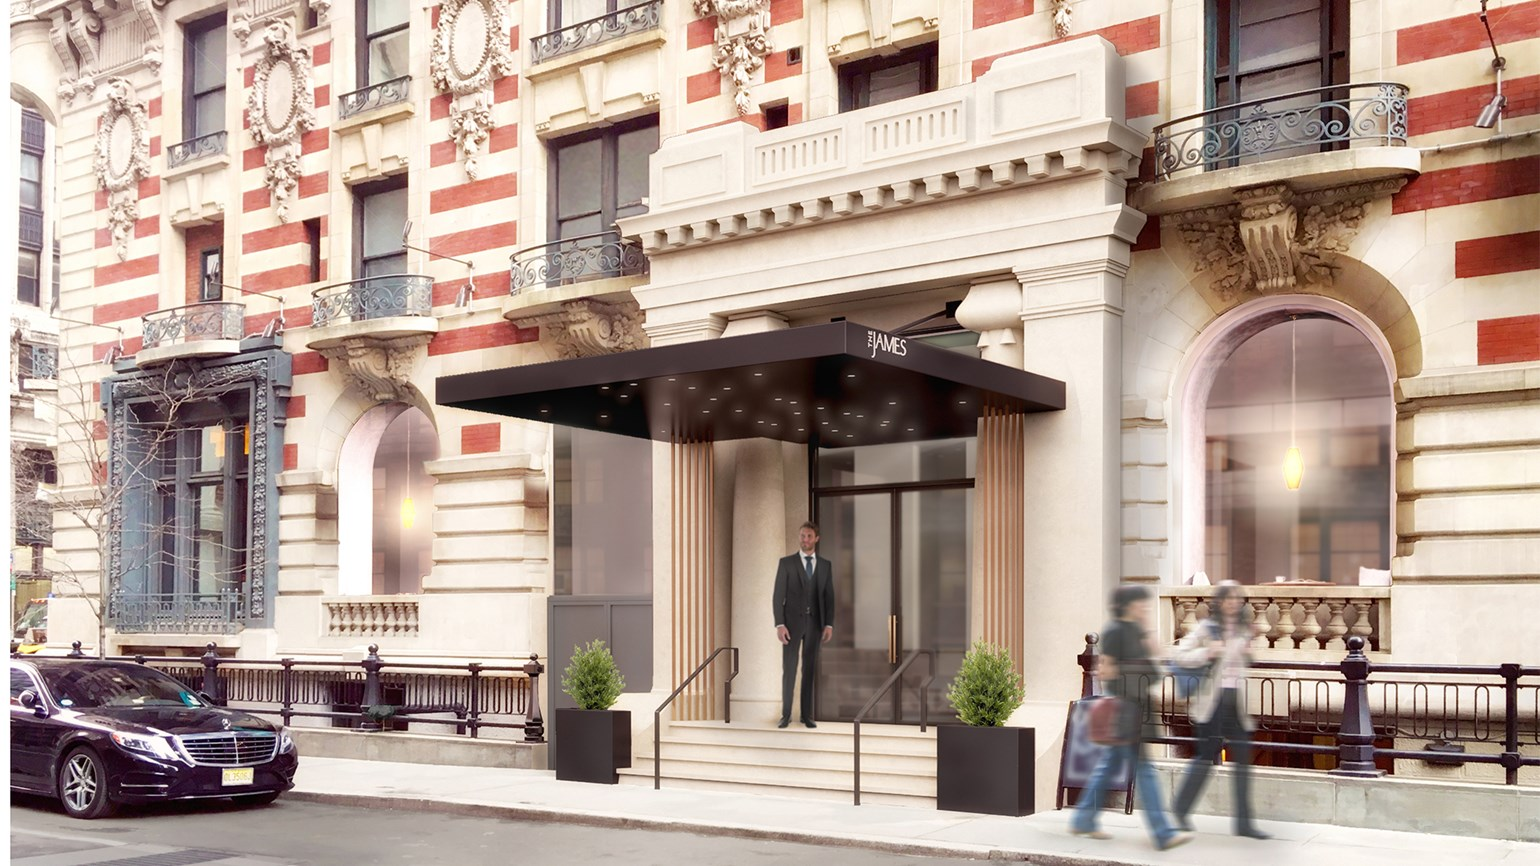 New York's Carlton Hotel converting to James brand